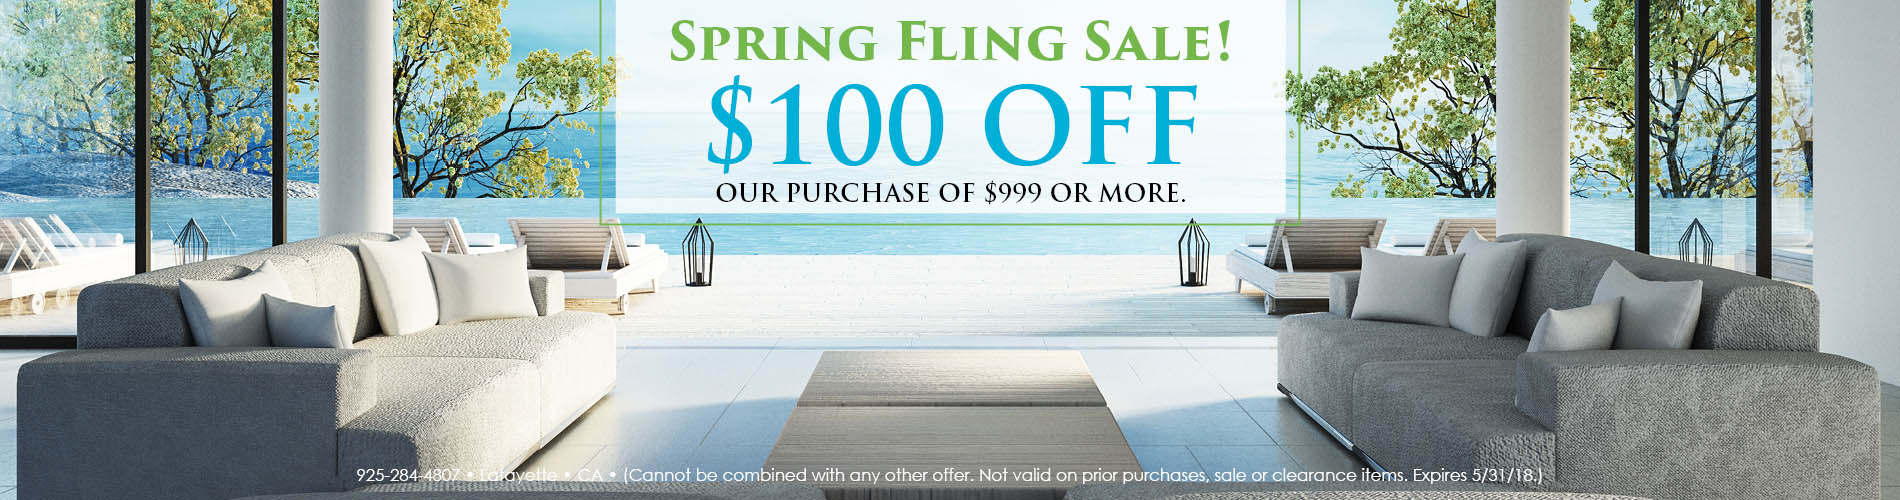 $100 OFF your purchase of $999 or more during the Spring Fling sale at Blidgett's Abbey Carpet & Flooring!